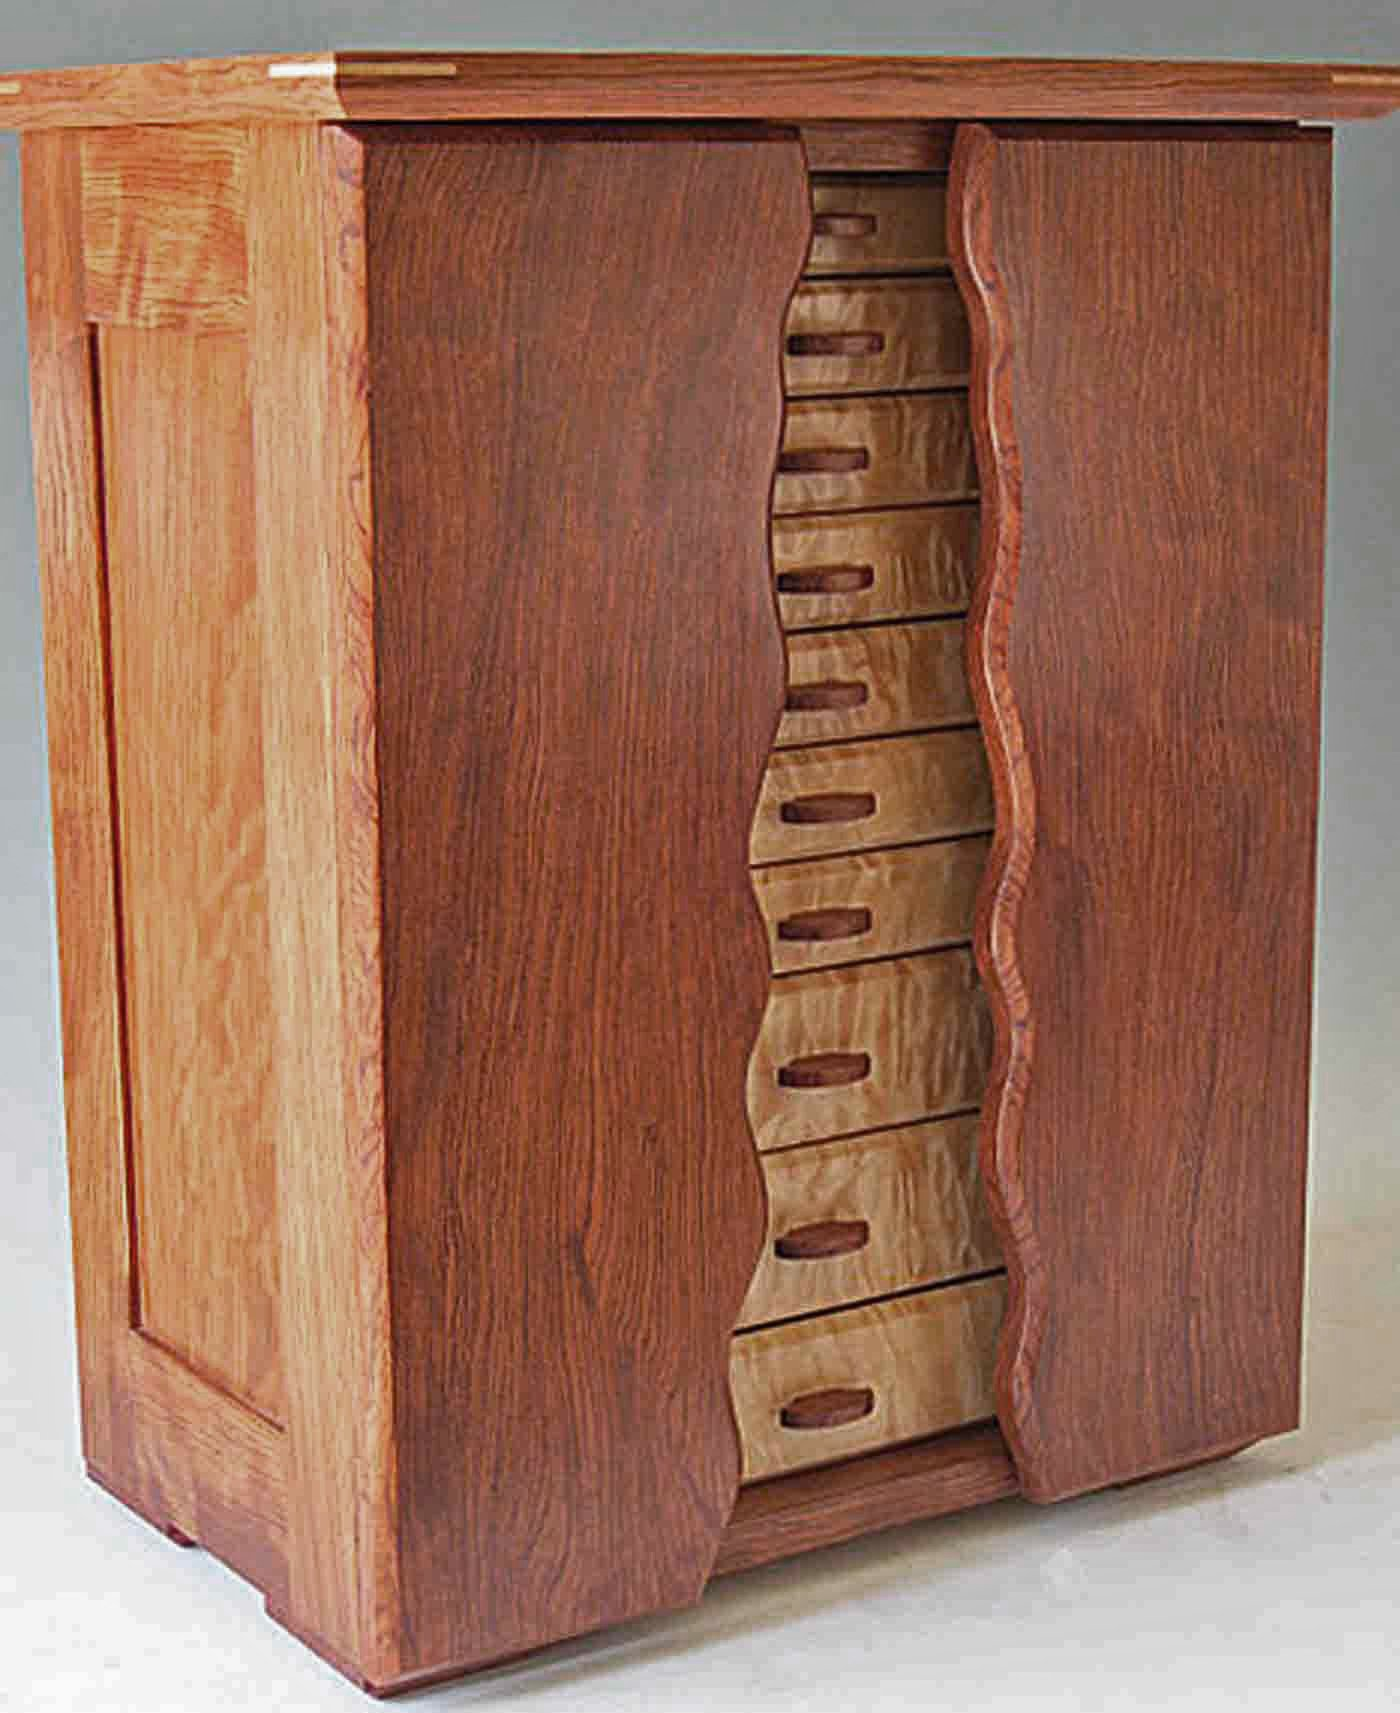 My armoire jewelry box, a tall box with ten drawers and sliders to hold necklaces.